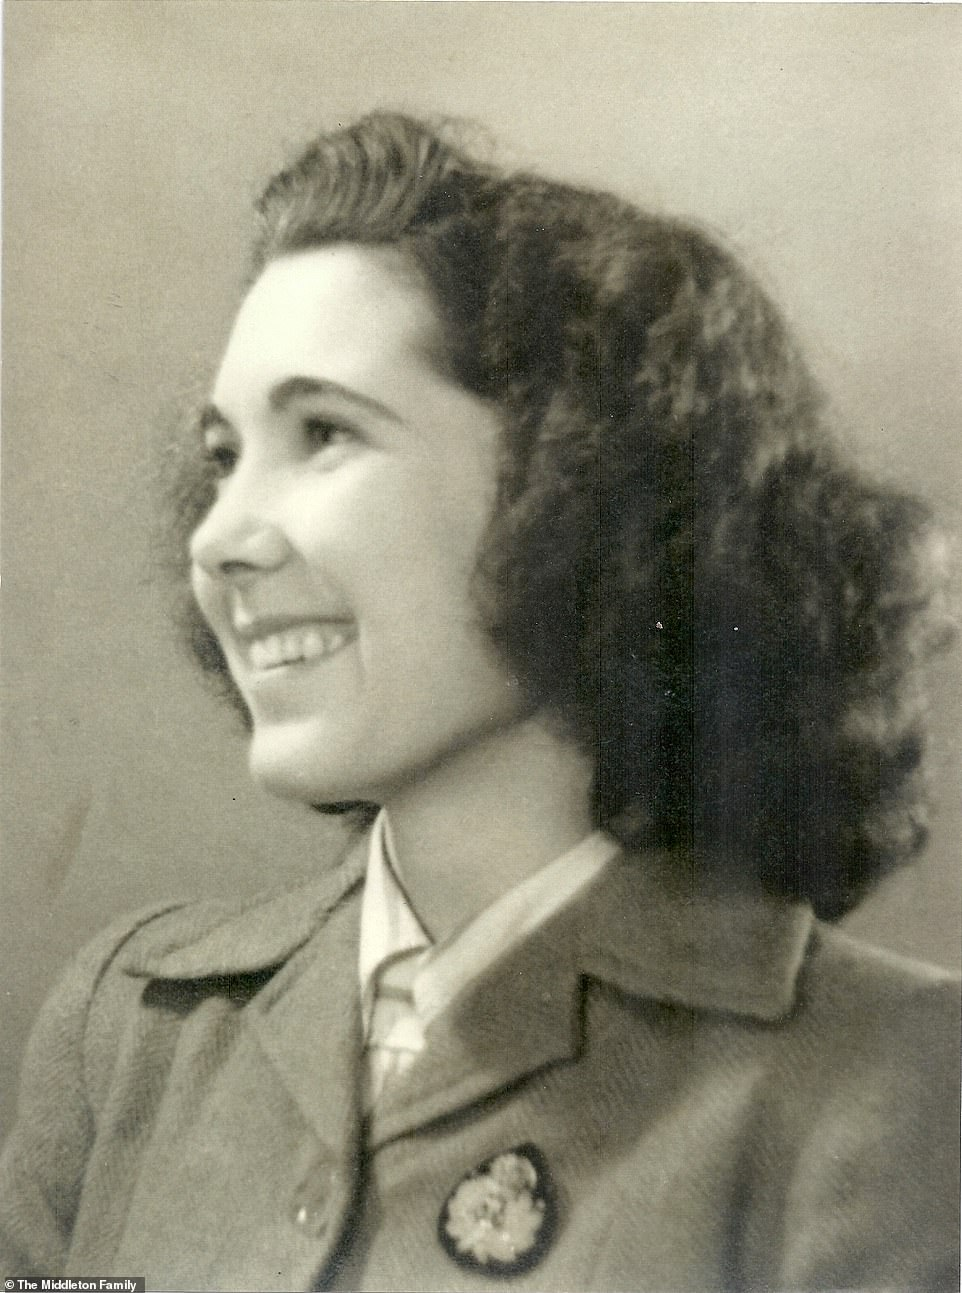 Kate praised her 'amazing granny' Valerie Glassborow (pictured), who worked as a Codebreaker at Bletchley Park during World War II